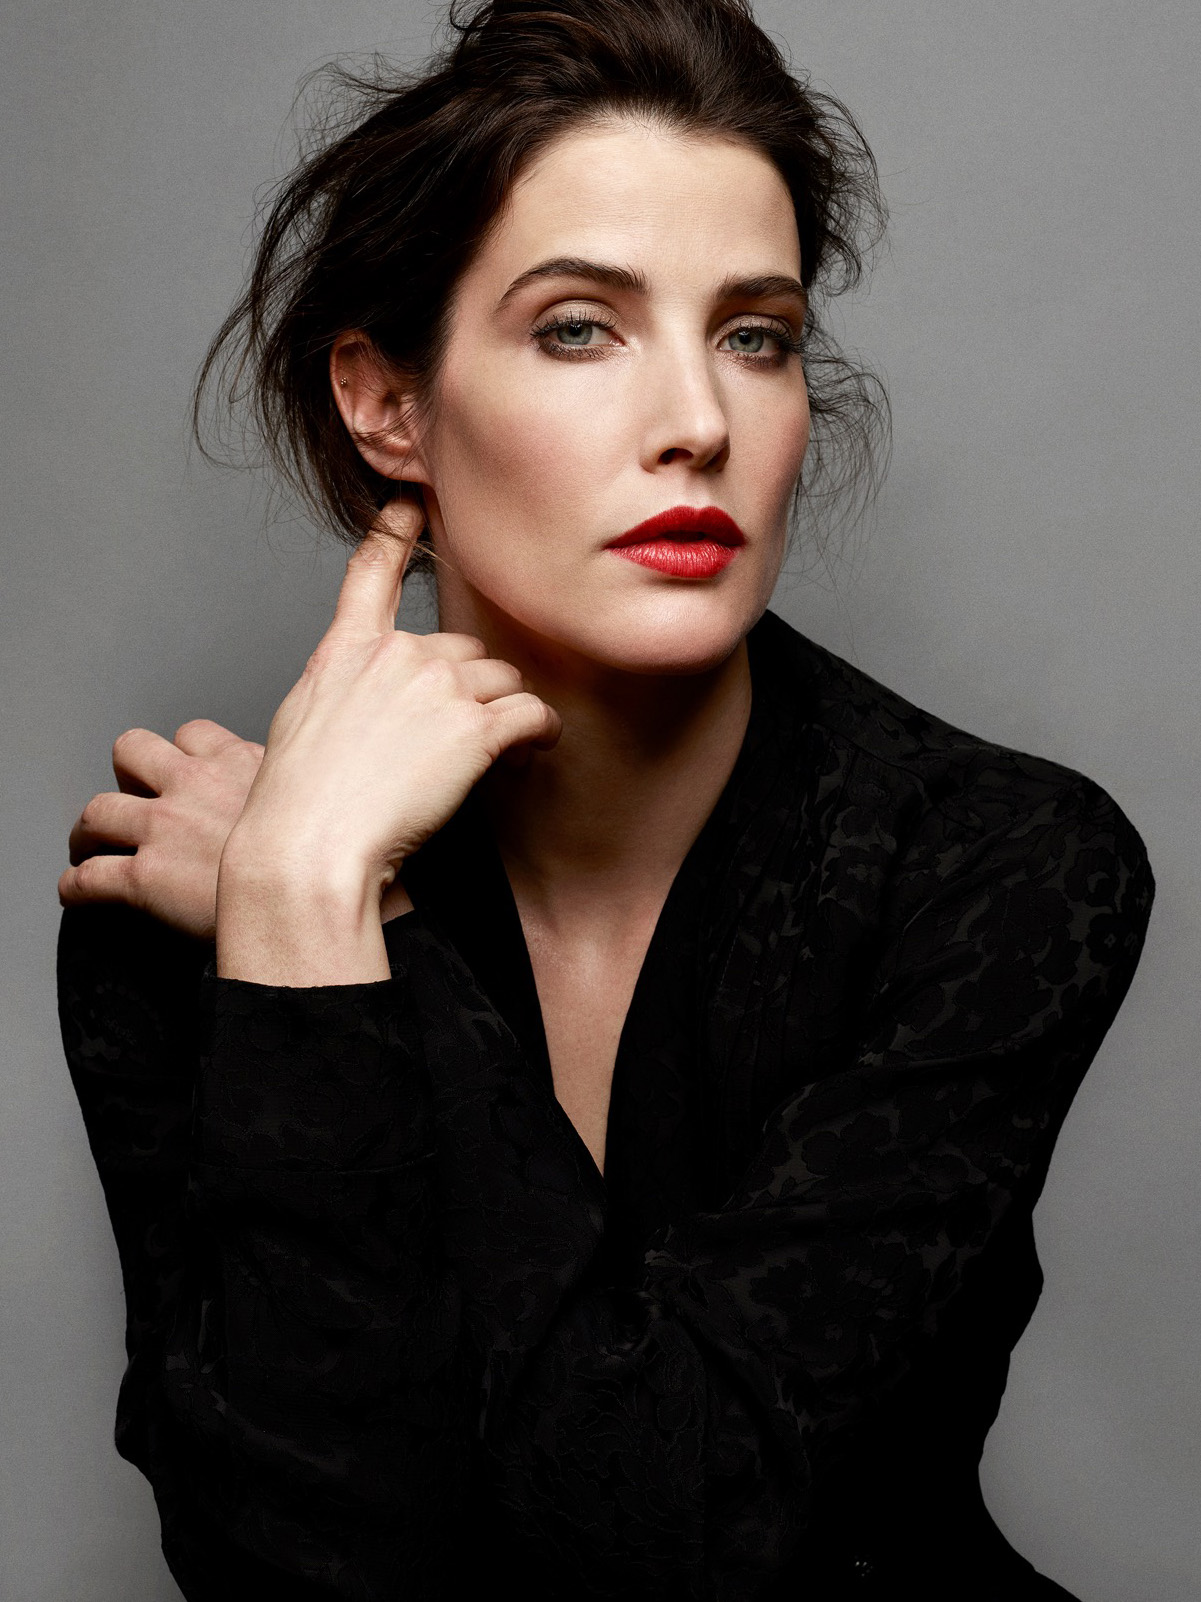 Rick_Wenner_APF_Cobie_Smulders_COLORjpg